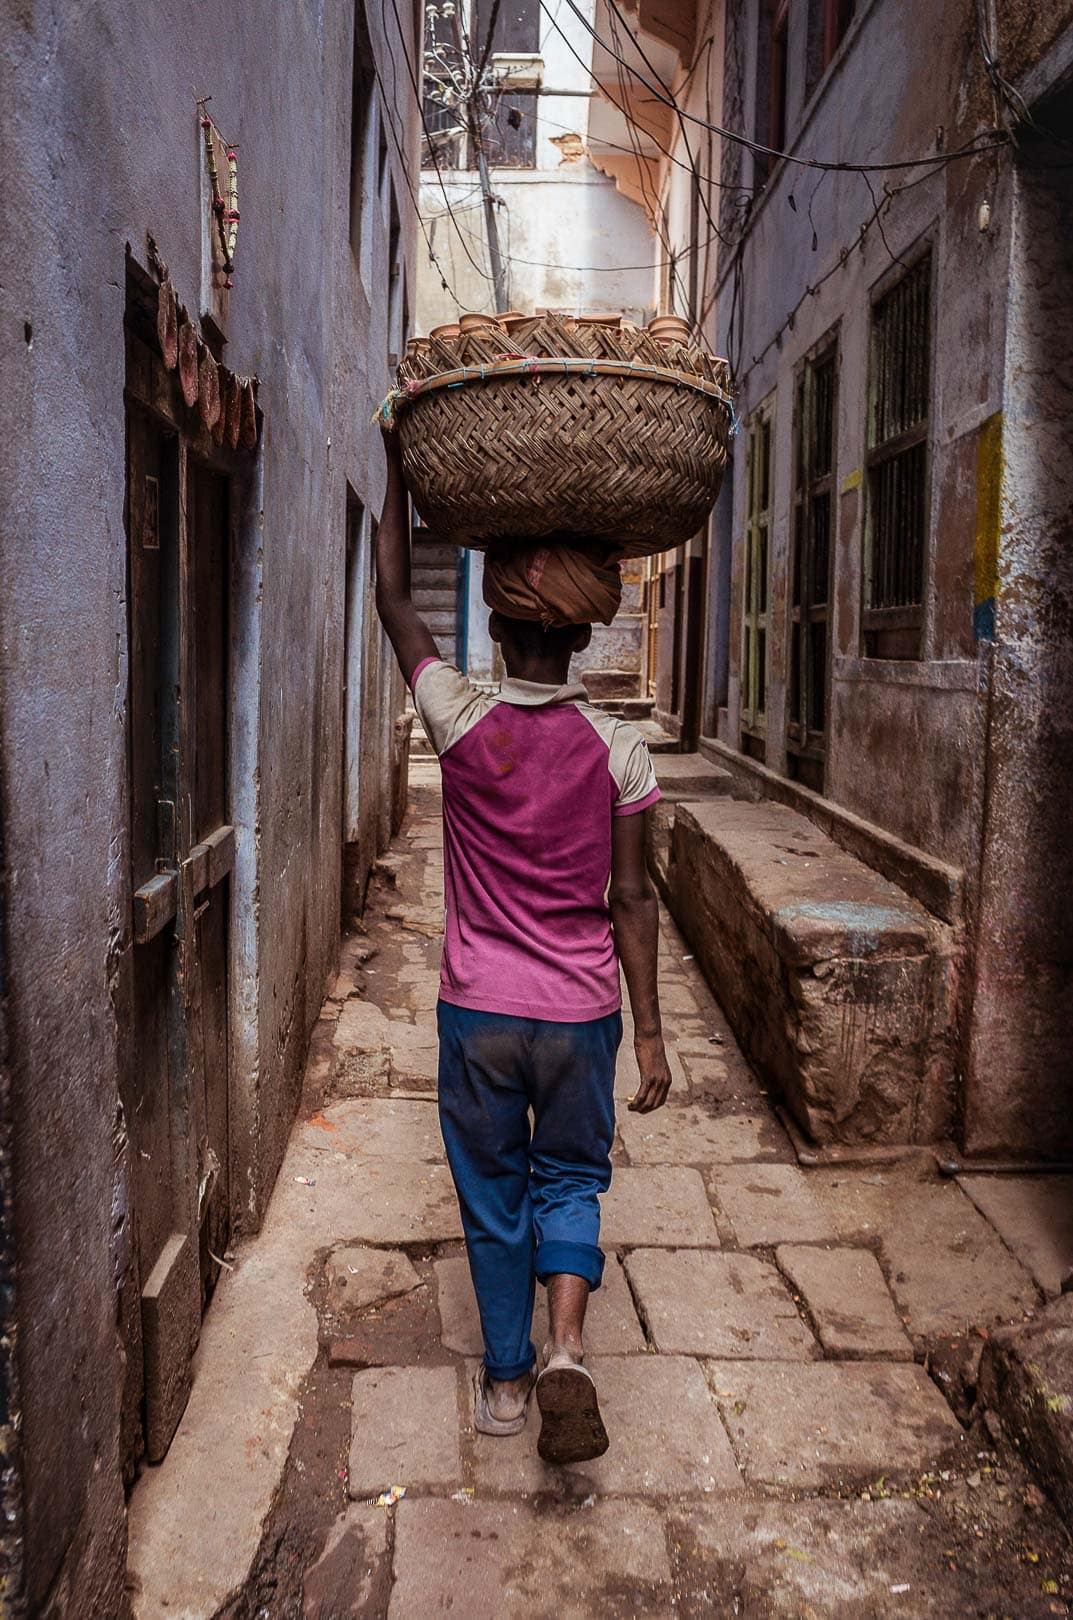 A young man carries chai cups in a basket on his head in Banares, India